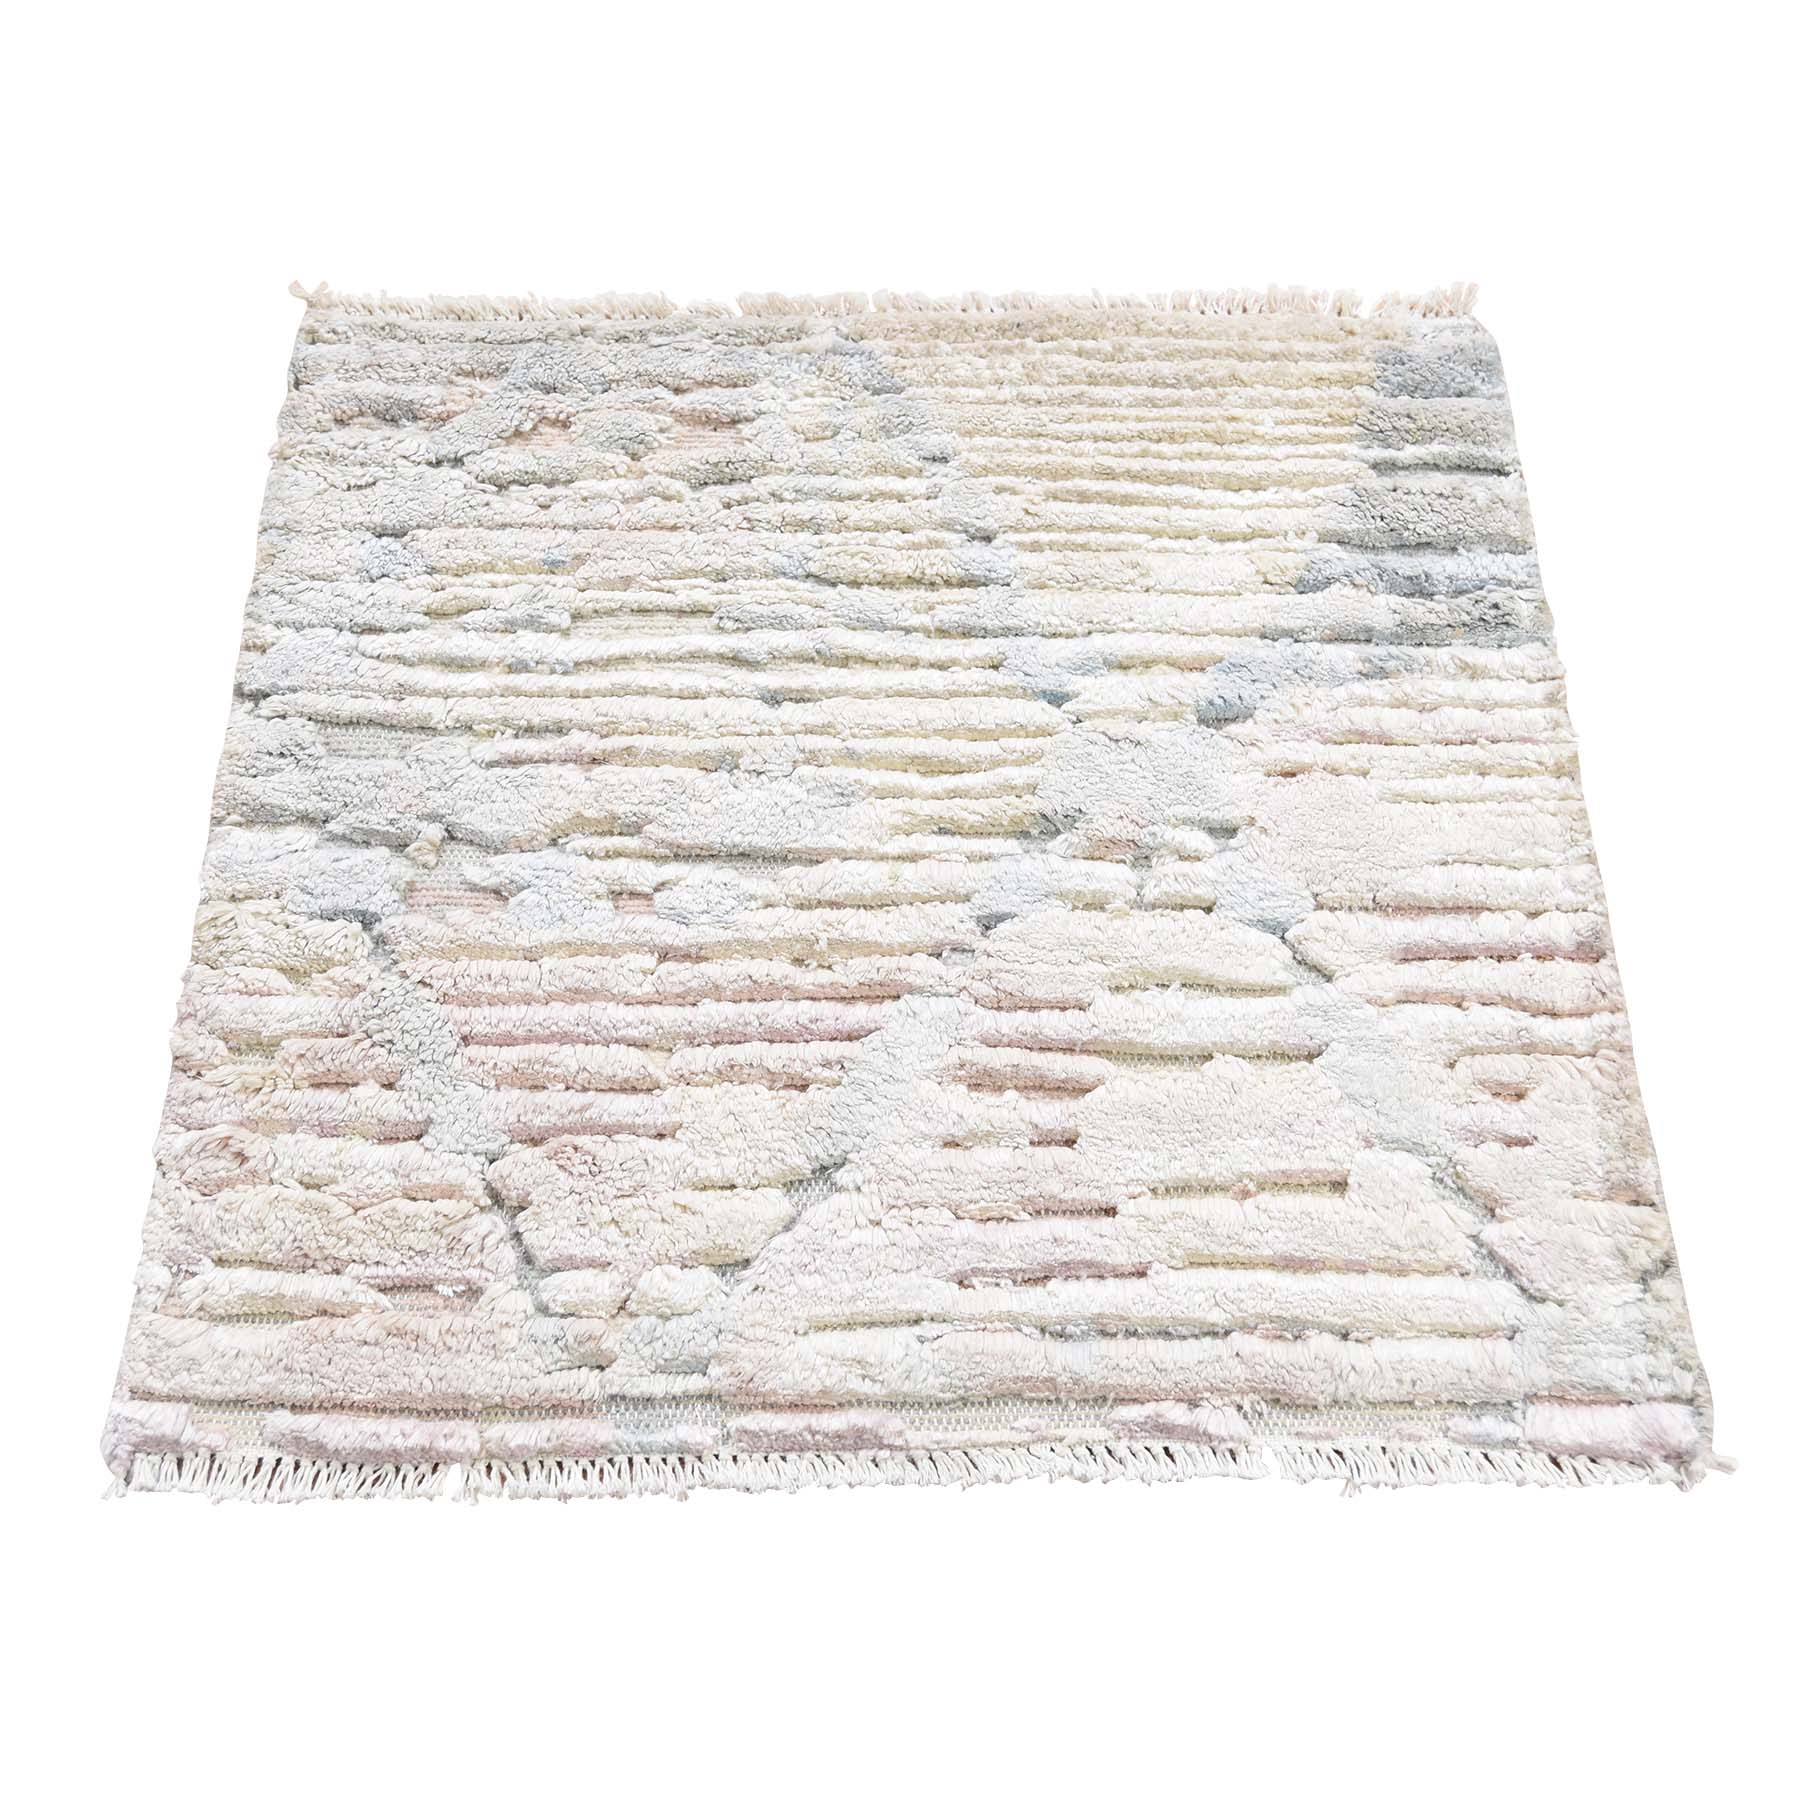 2'X2' Sampler Luxurious Plush Pure Silk With Textured Wool Hand-Knotted Oriental Rug moad67b8